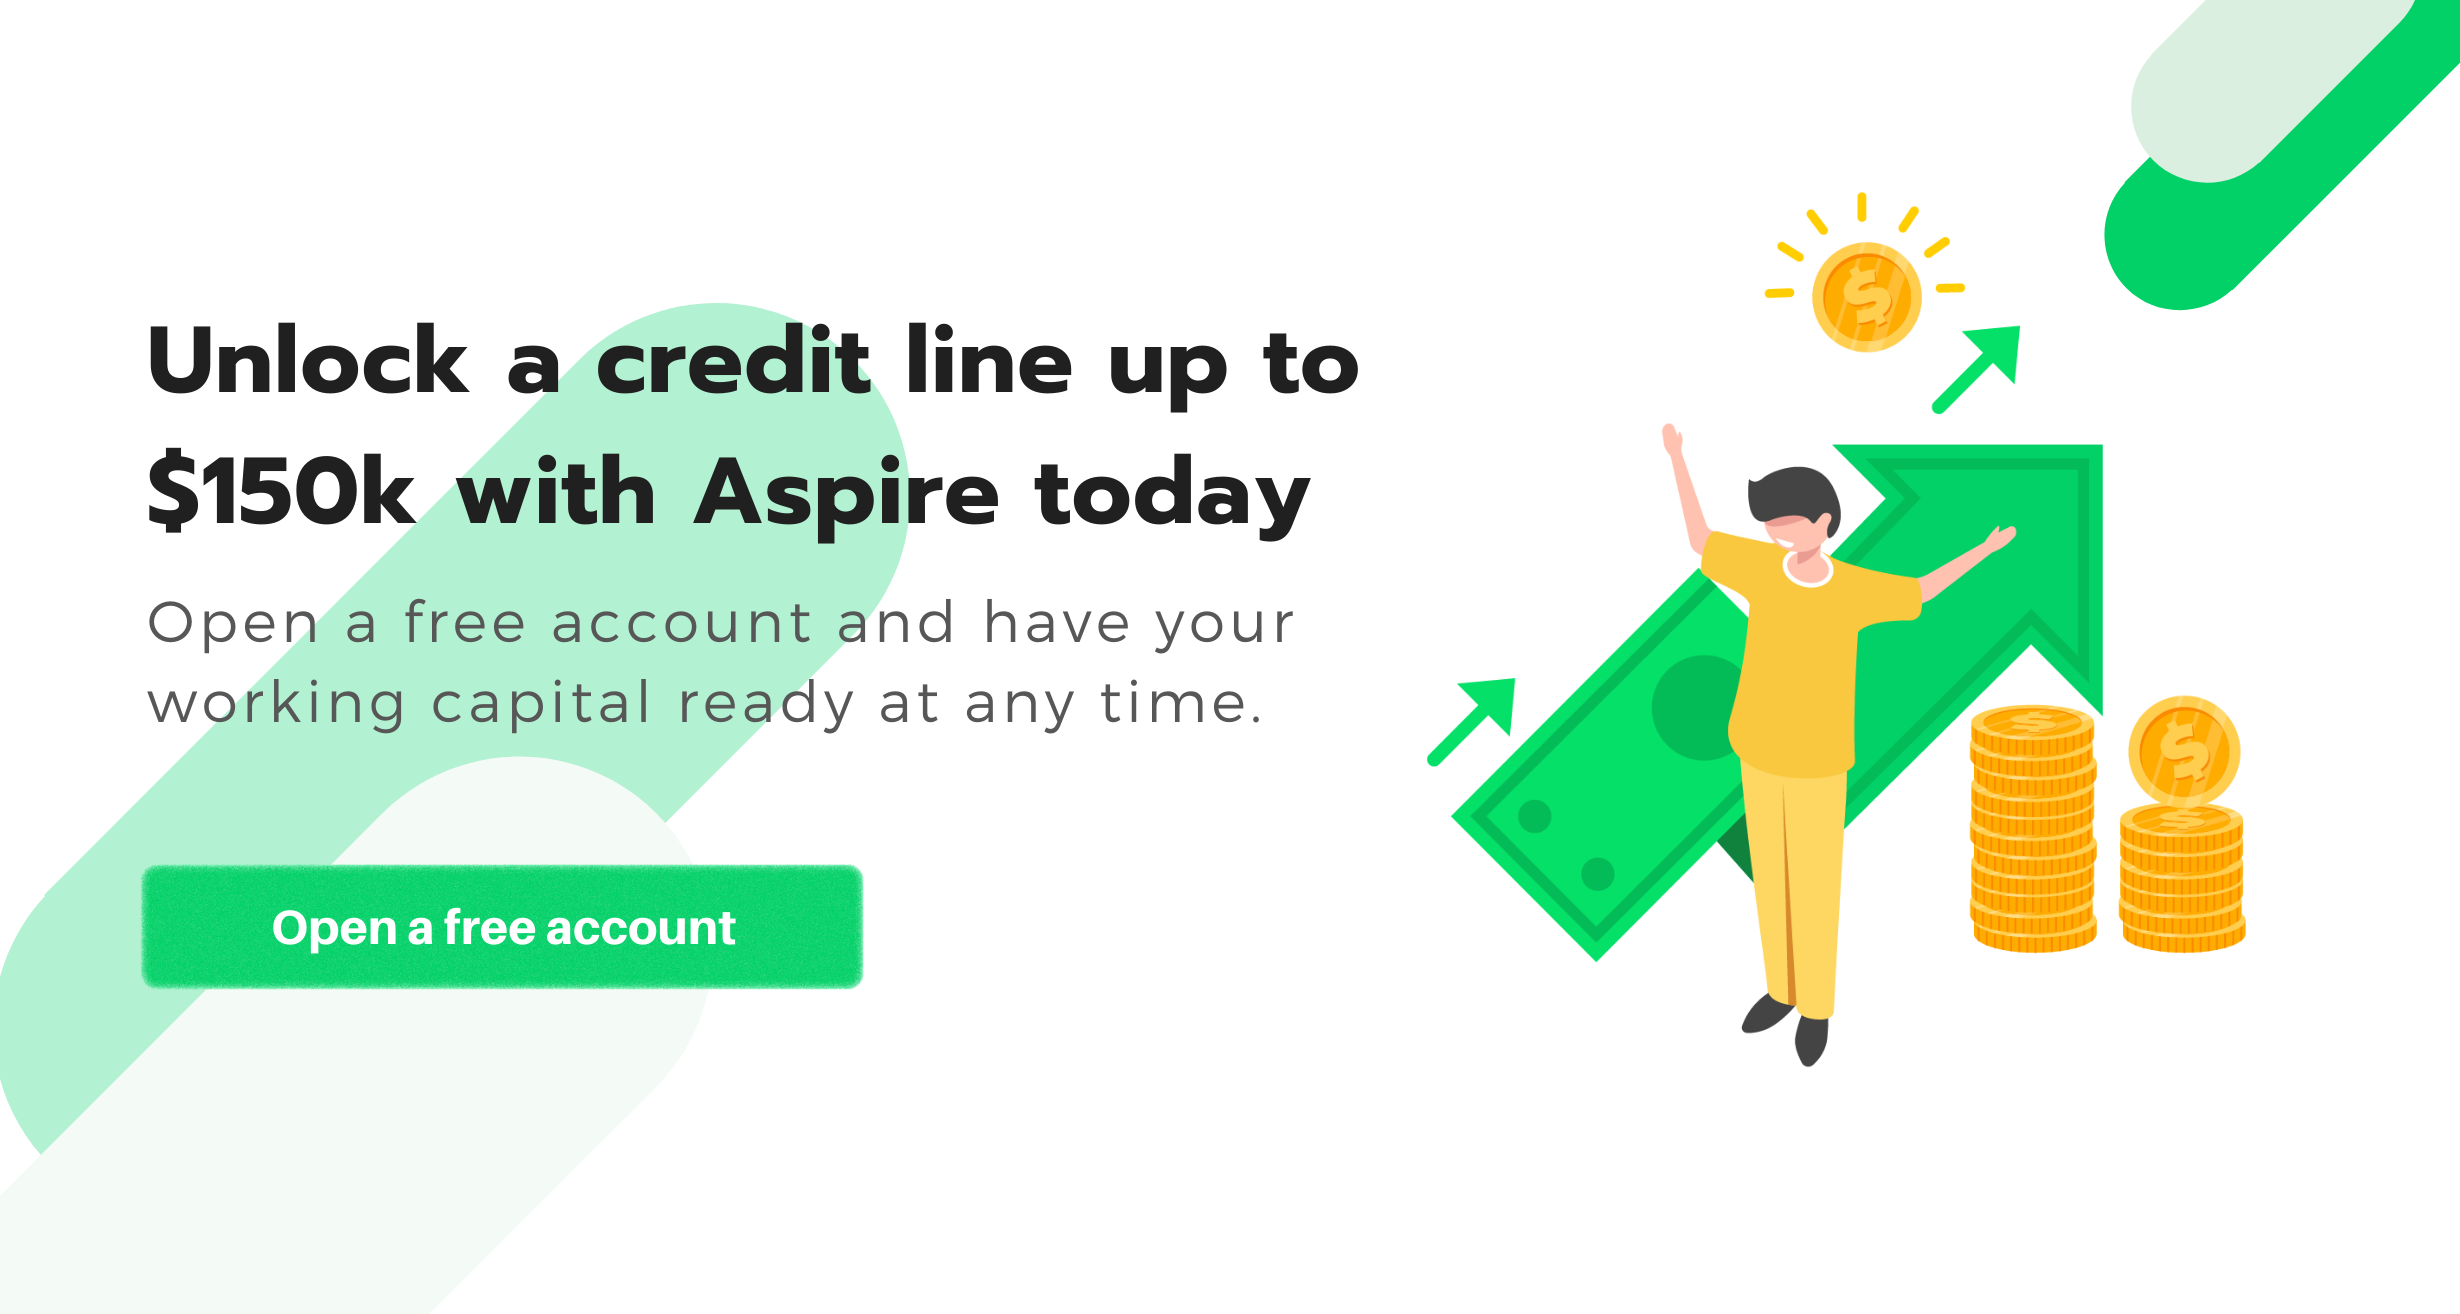 Unlock a credit line up to $150k with Aspire Today